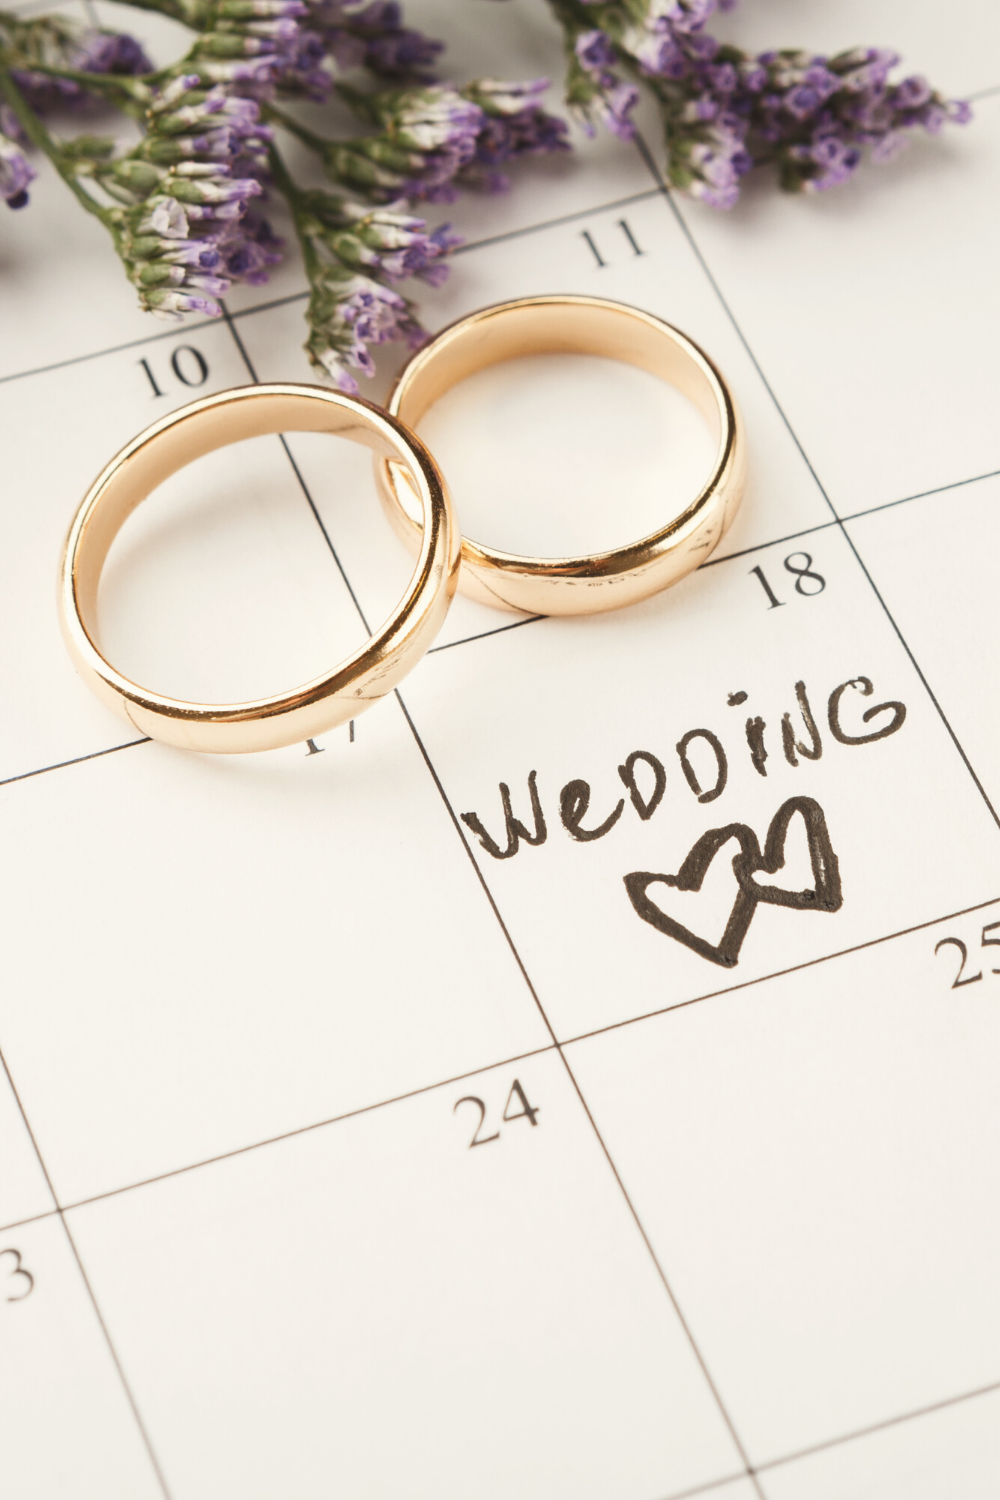 Check out these tips on how to hire the perfect wedding planner for you!